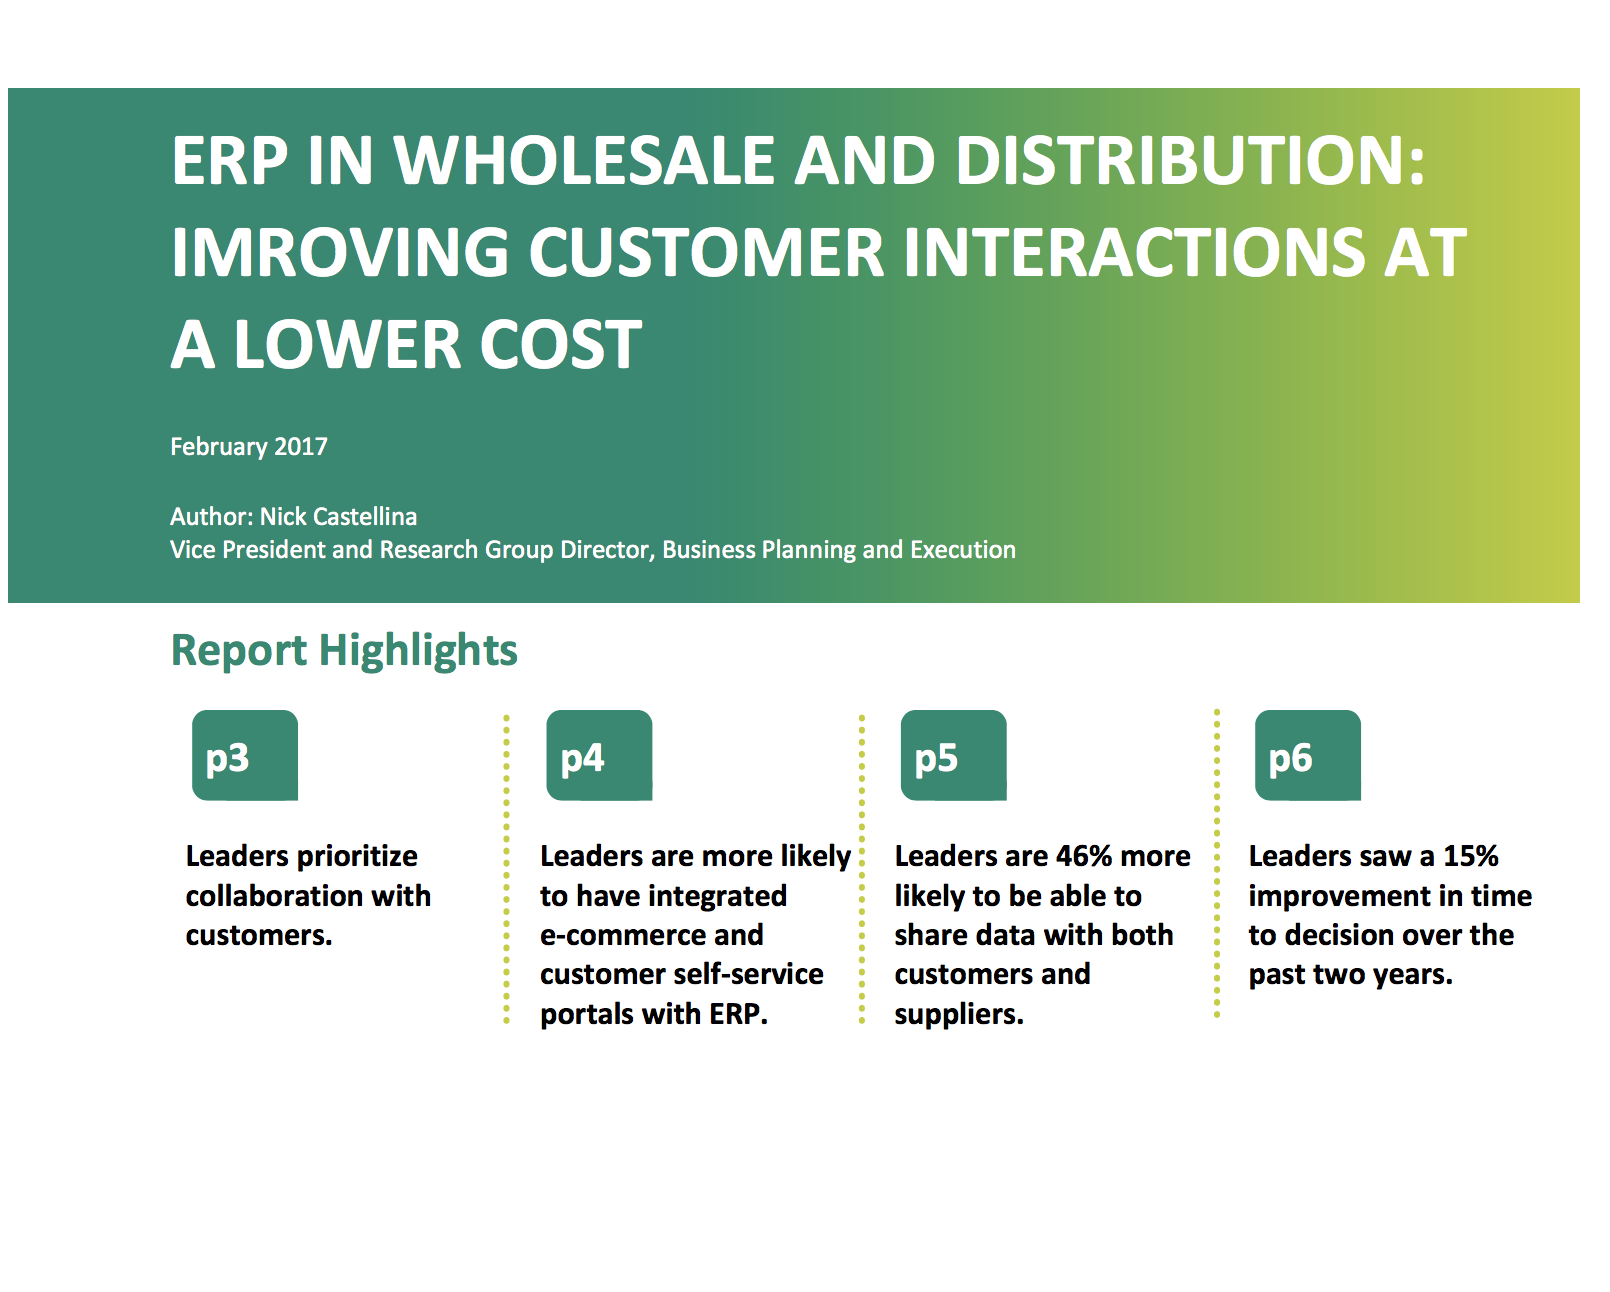 ERP in Wholesale and Distribution